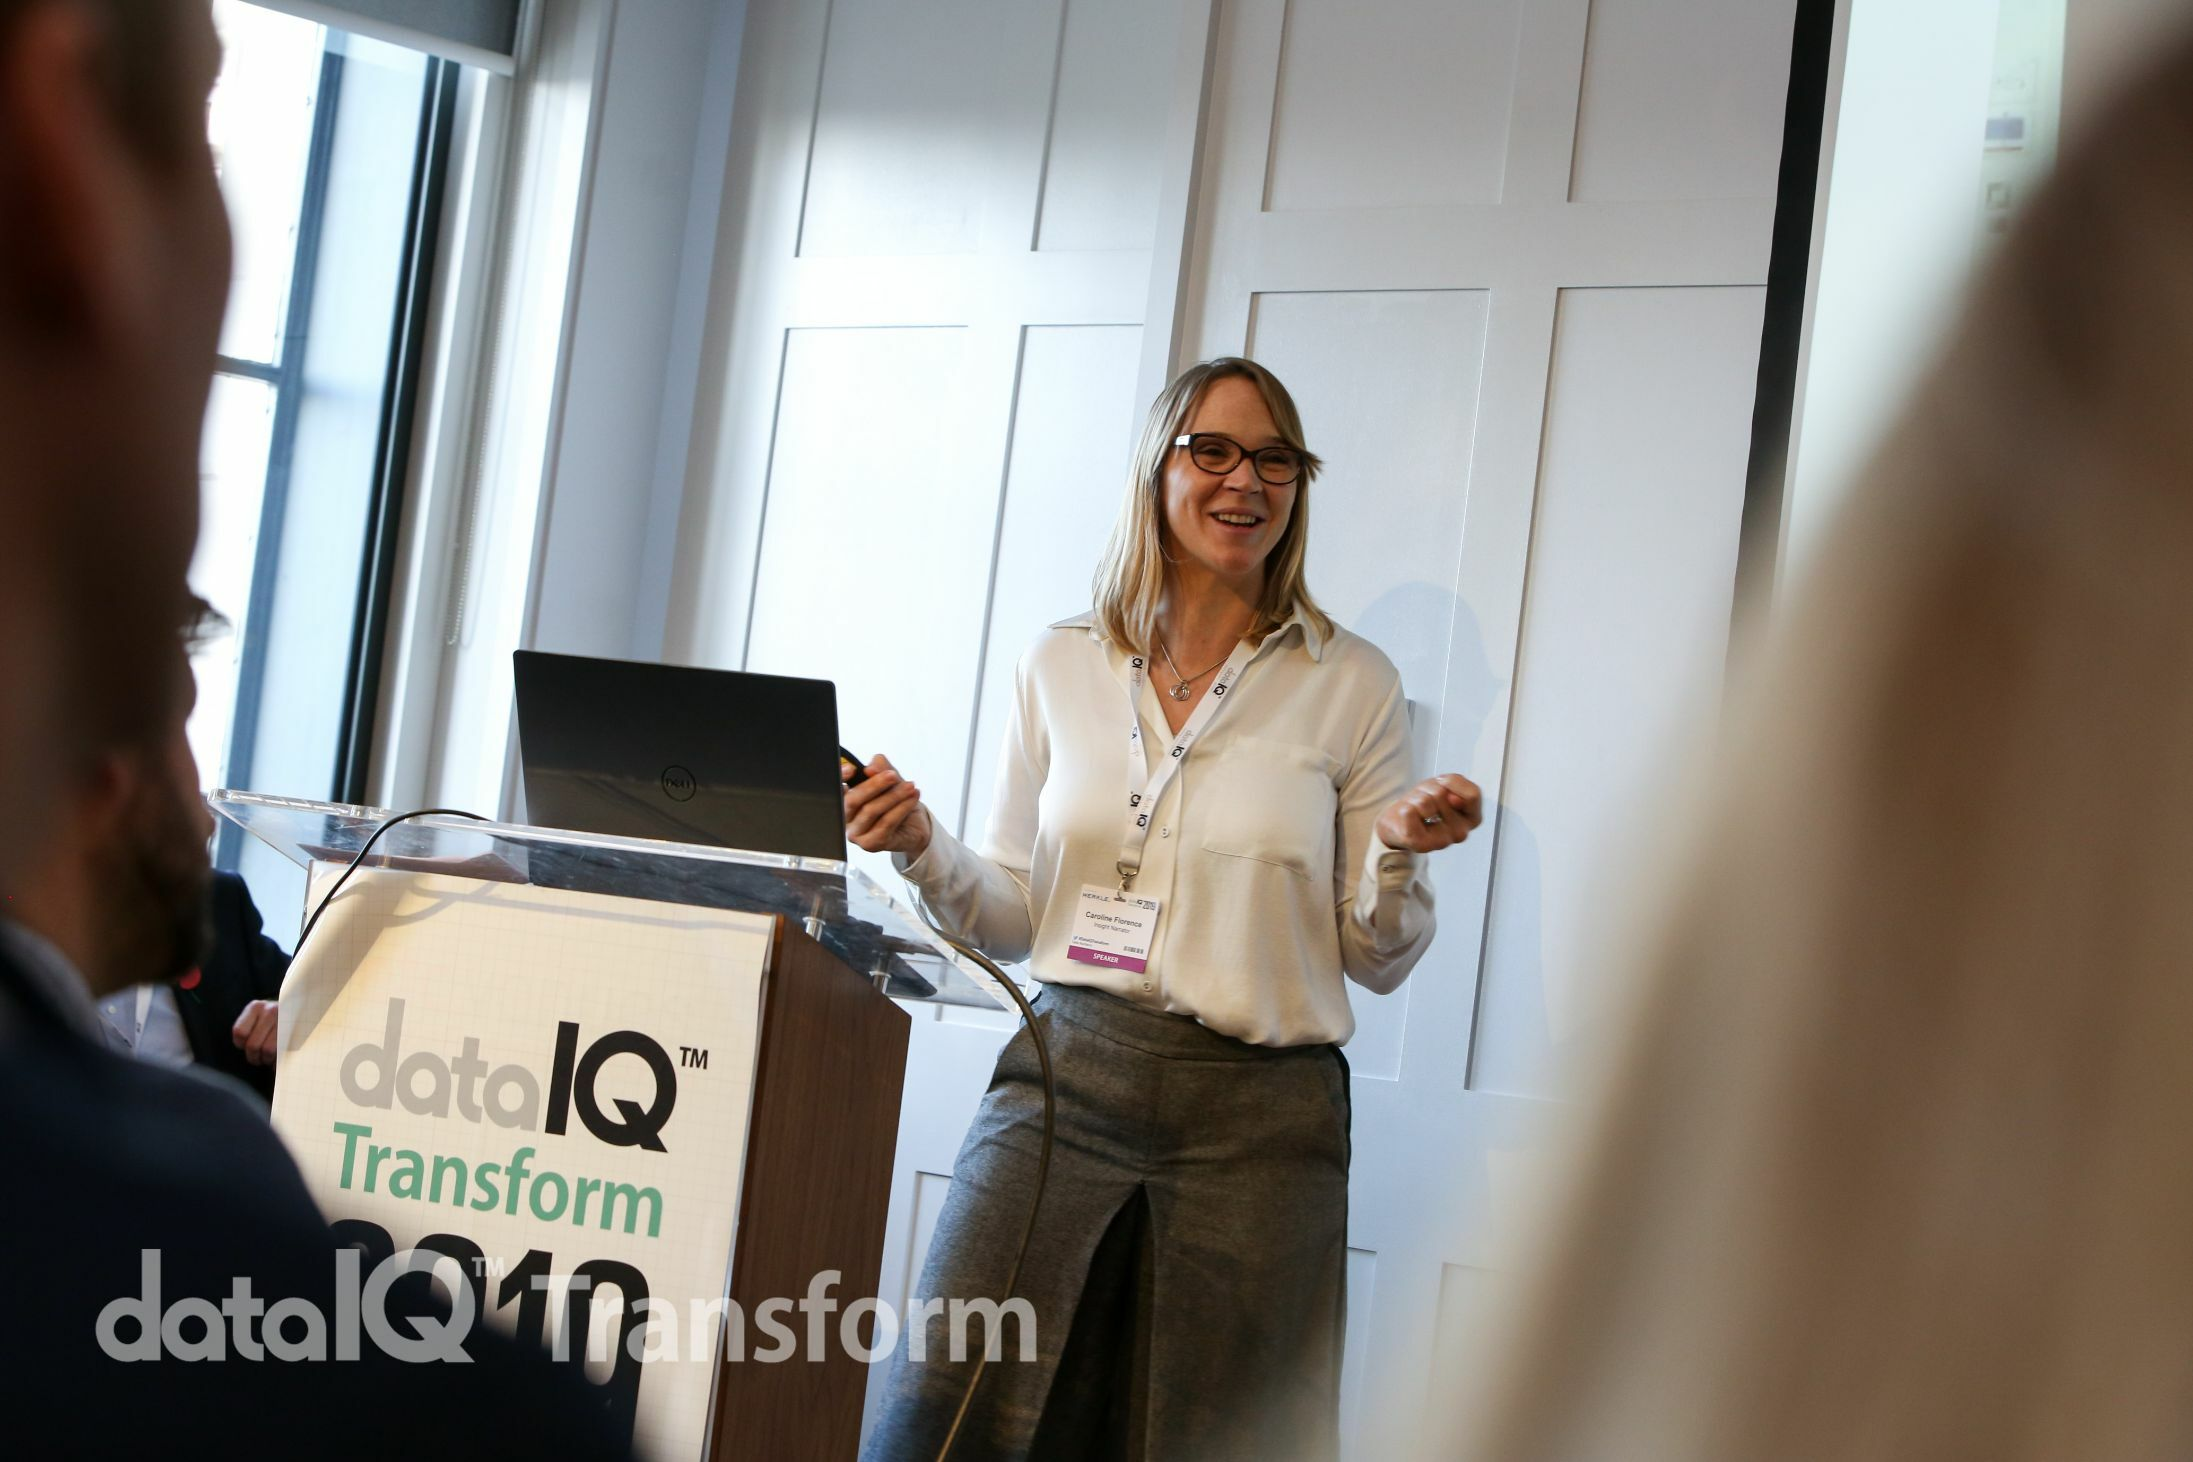 DataIQ Transform 2019 Image 46